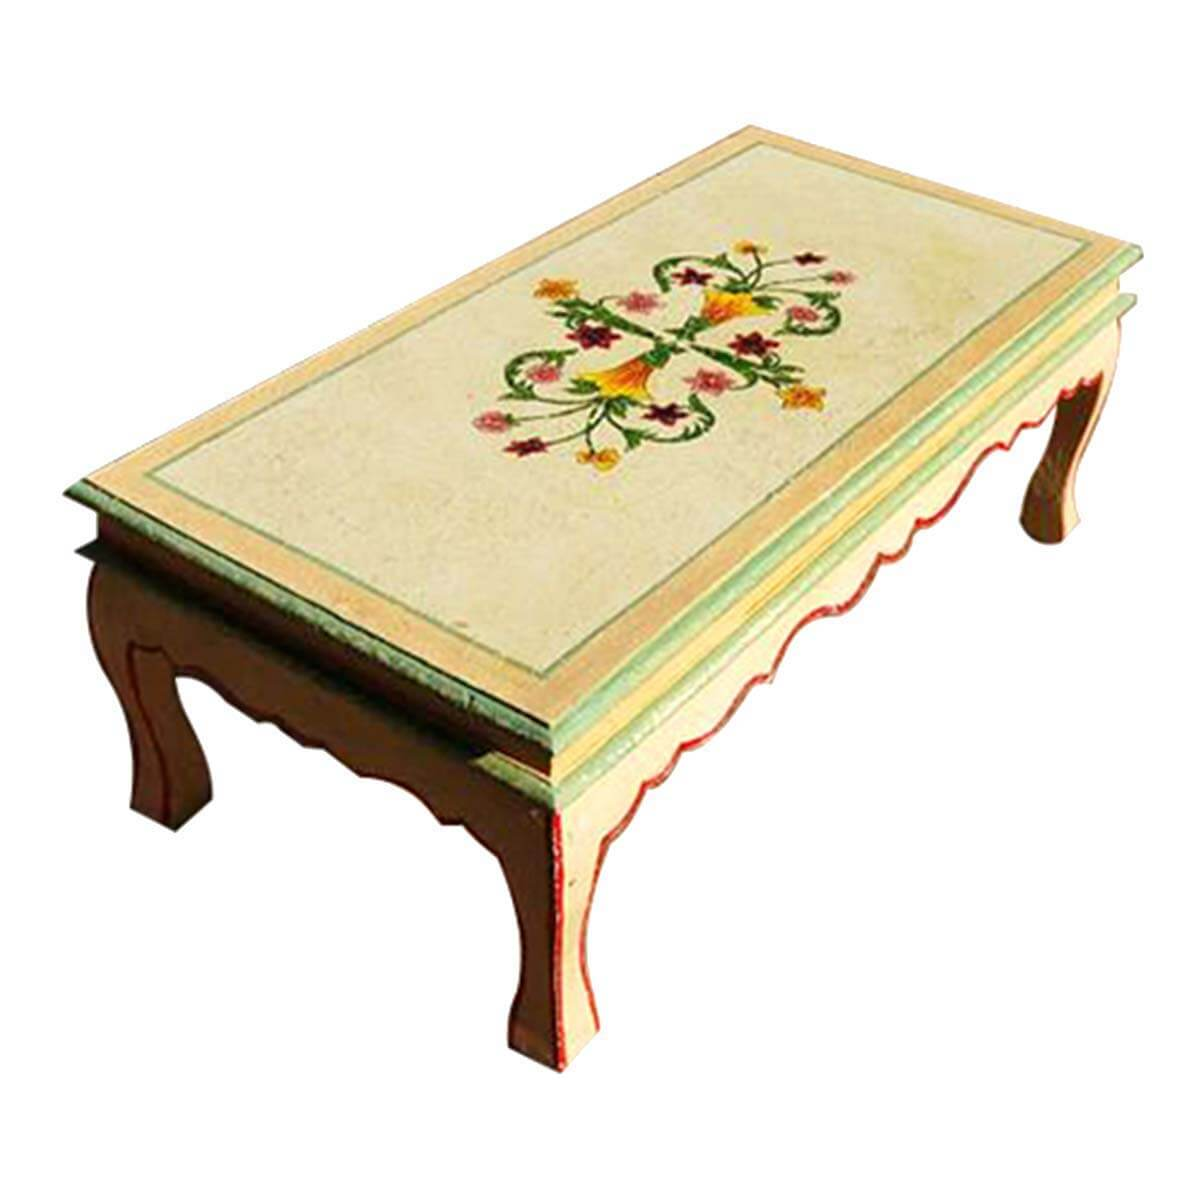 Anne style vintage floral hand painted coffee table queen anne style vintage floral hand painted coffee table geotapseo Gallery